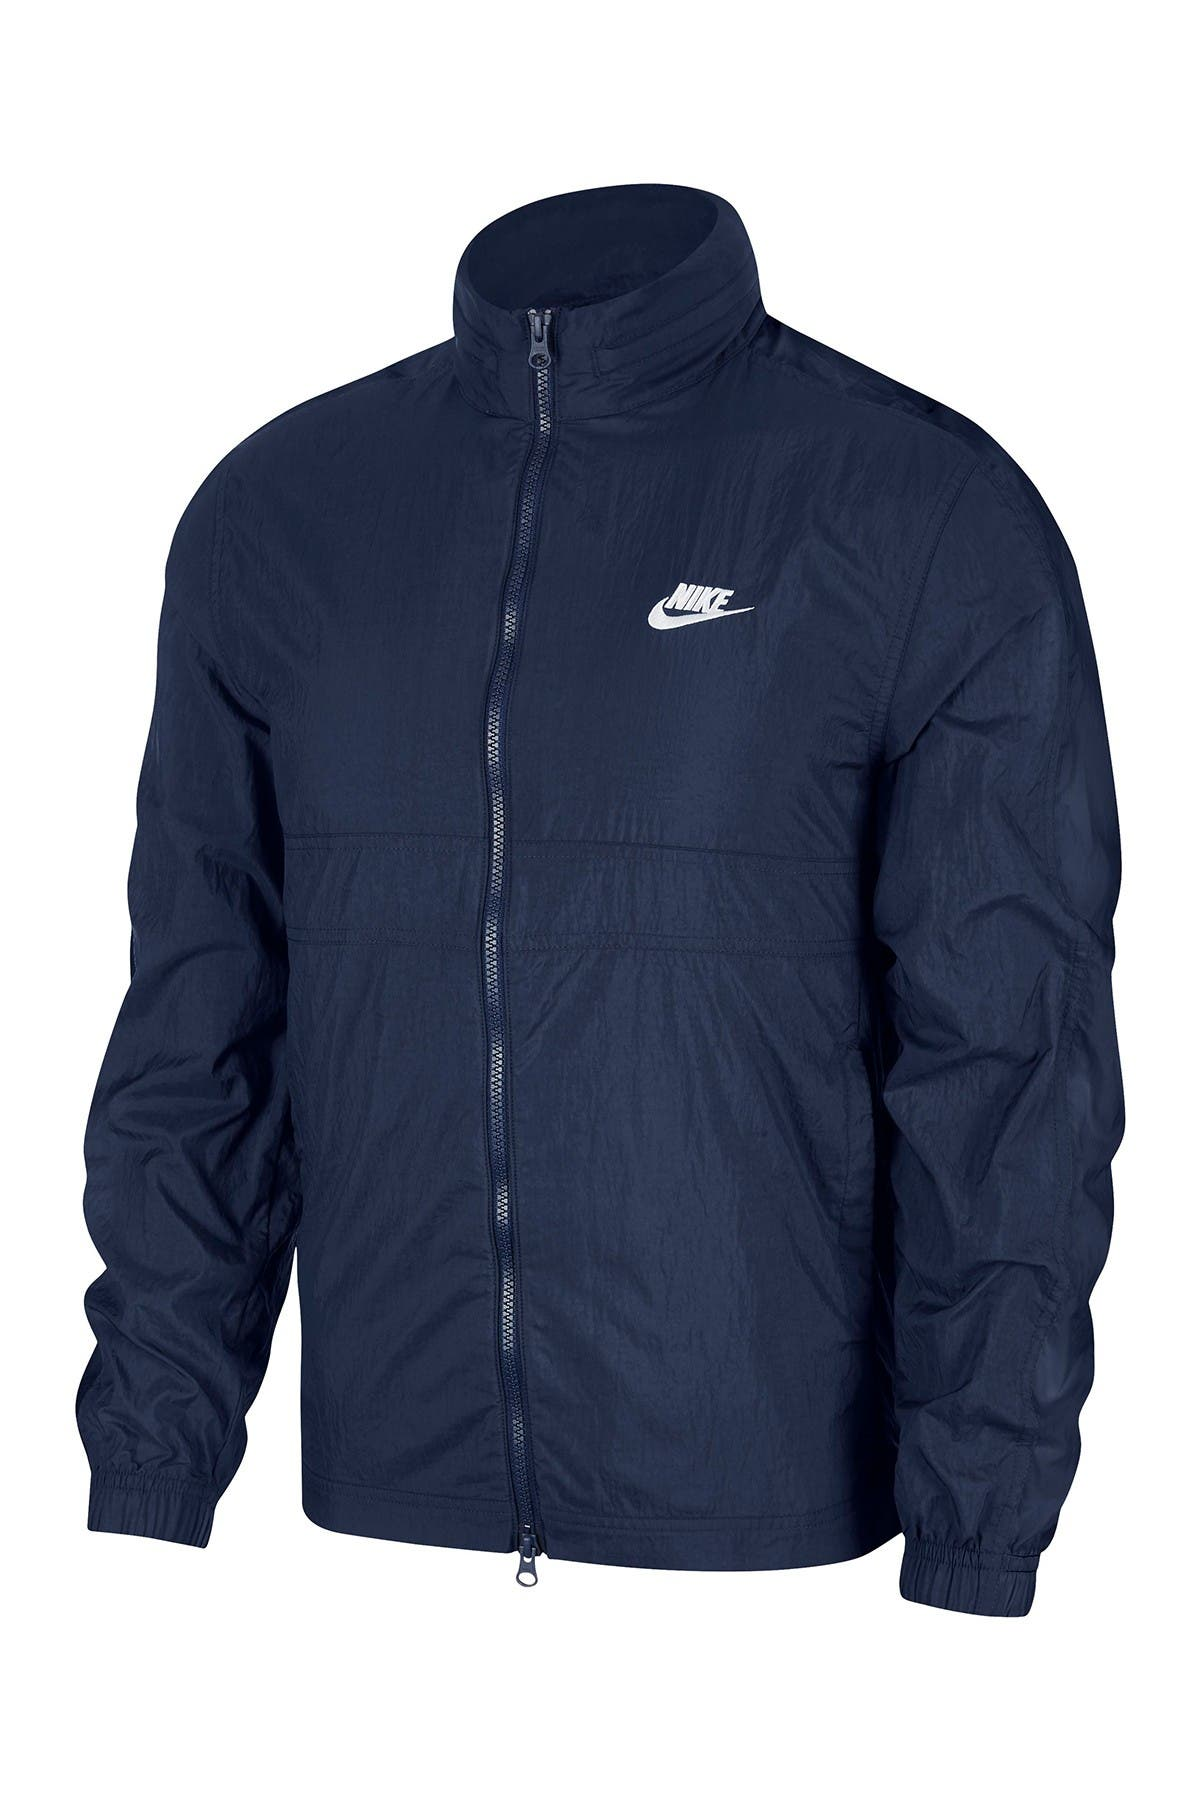 Image of Nike Zip Front Track Jacket